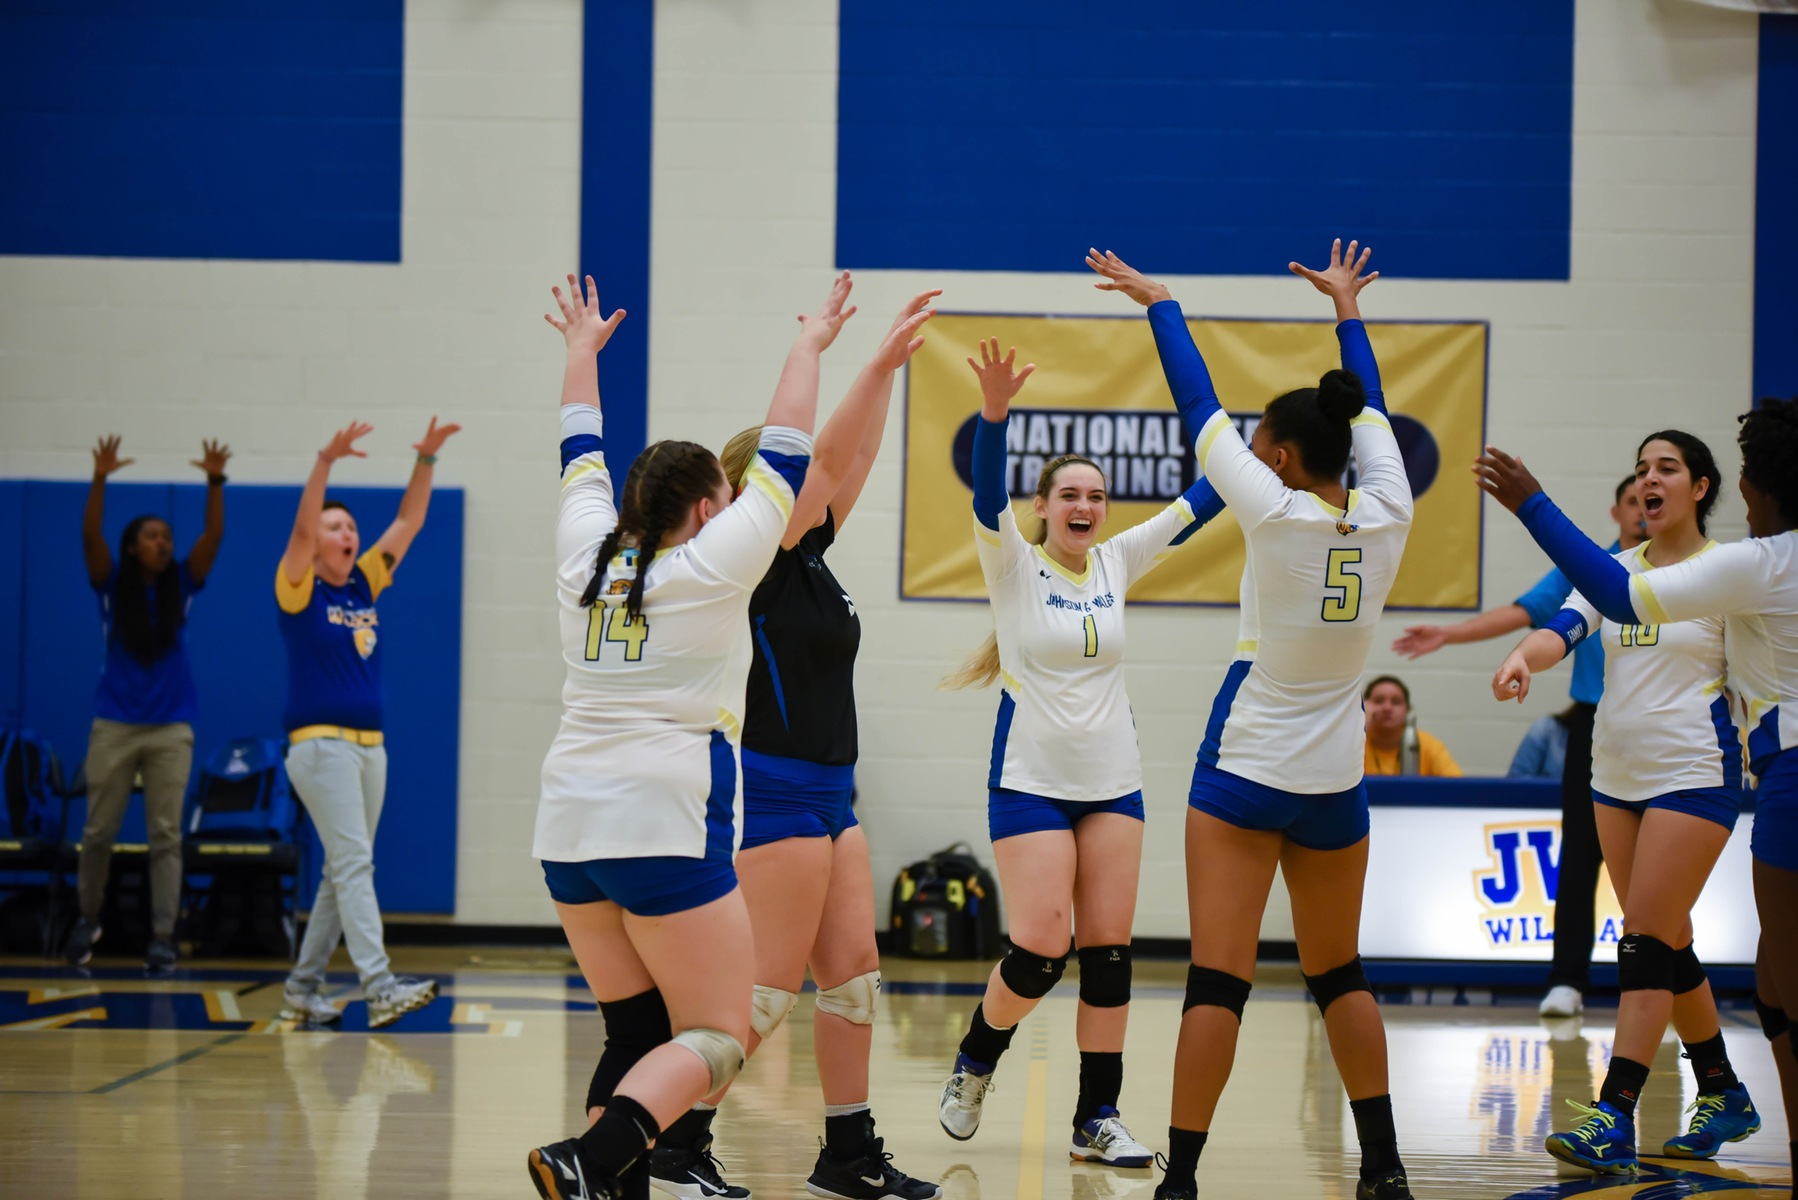 JWU Volleyball Puts in Commanding Performance in Sweep over Livingstone